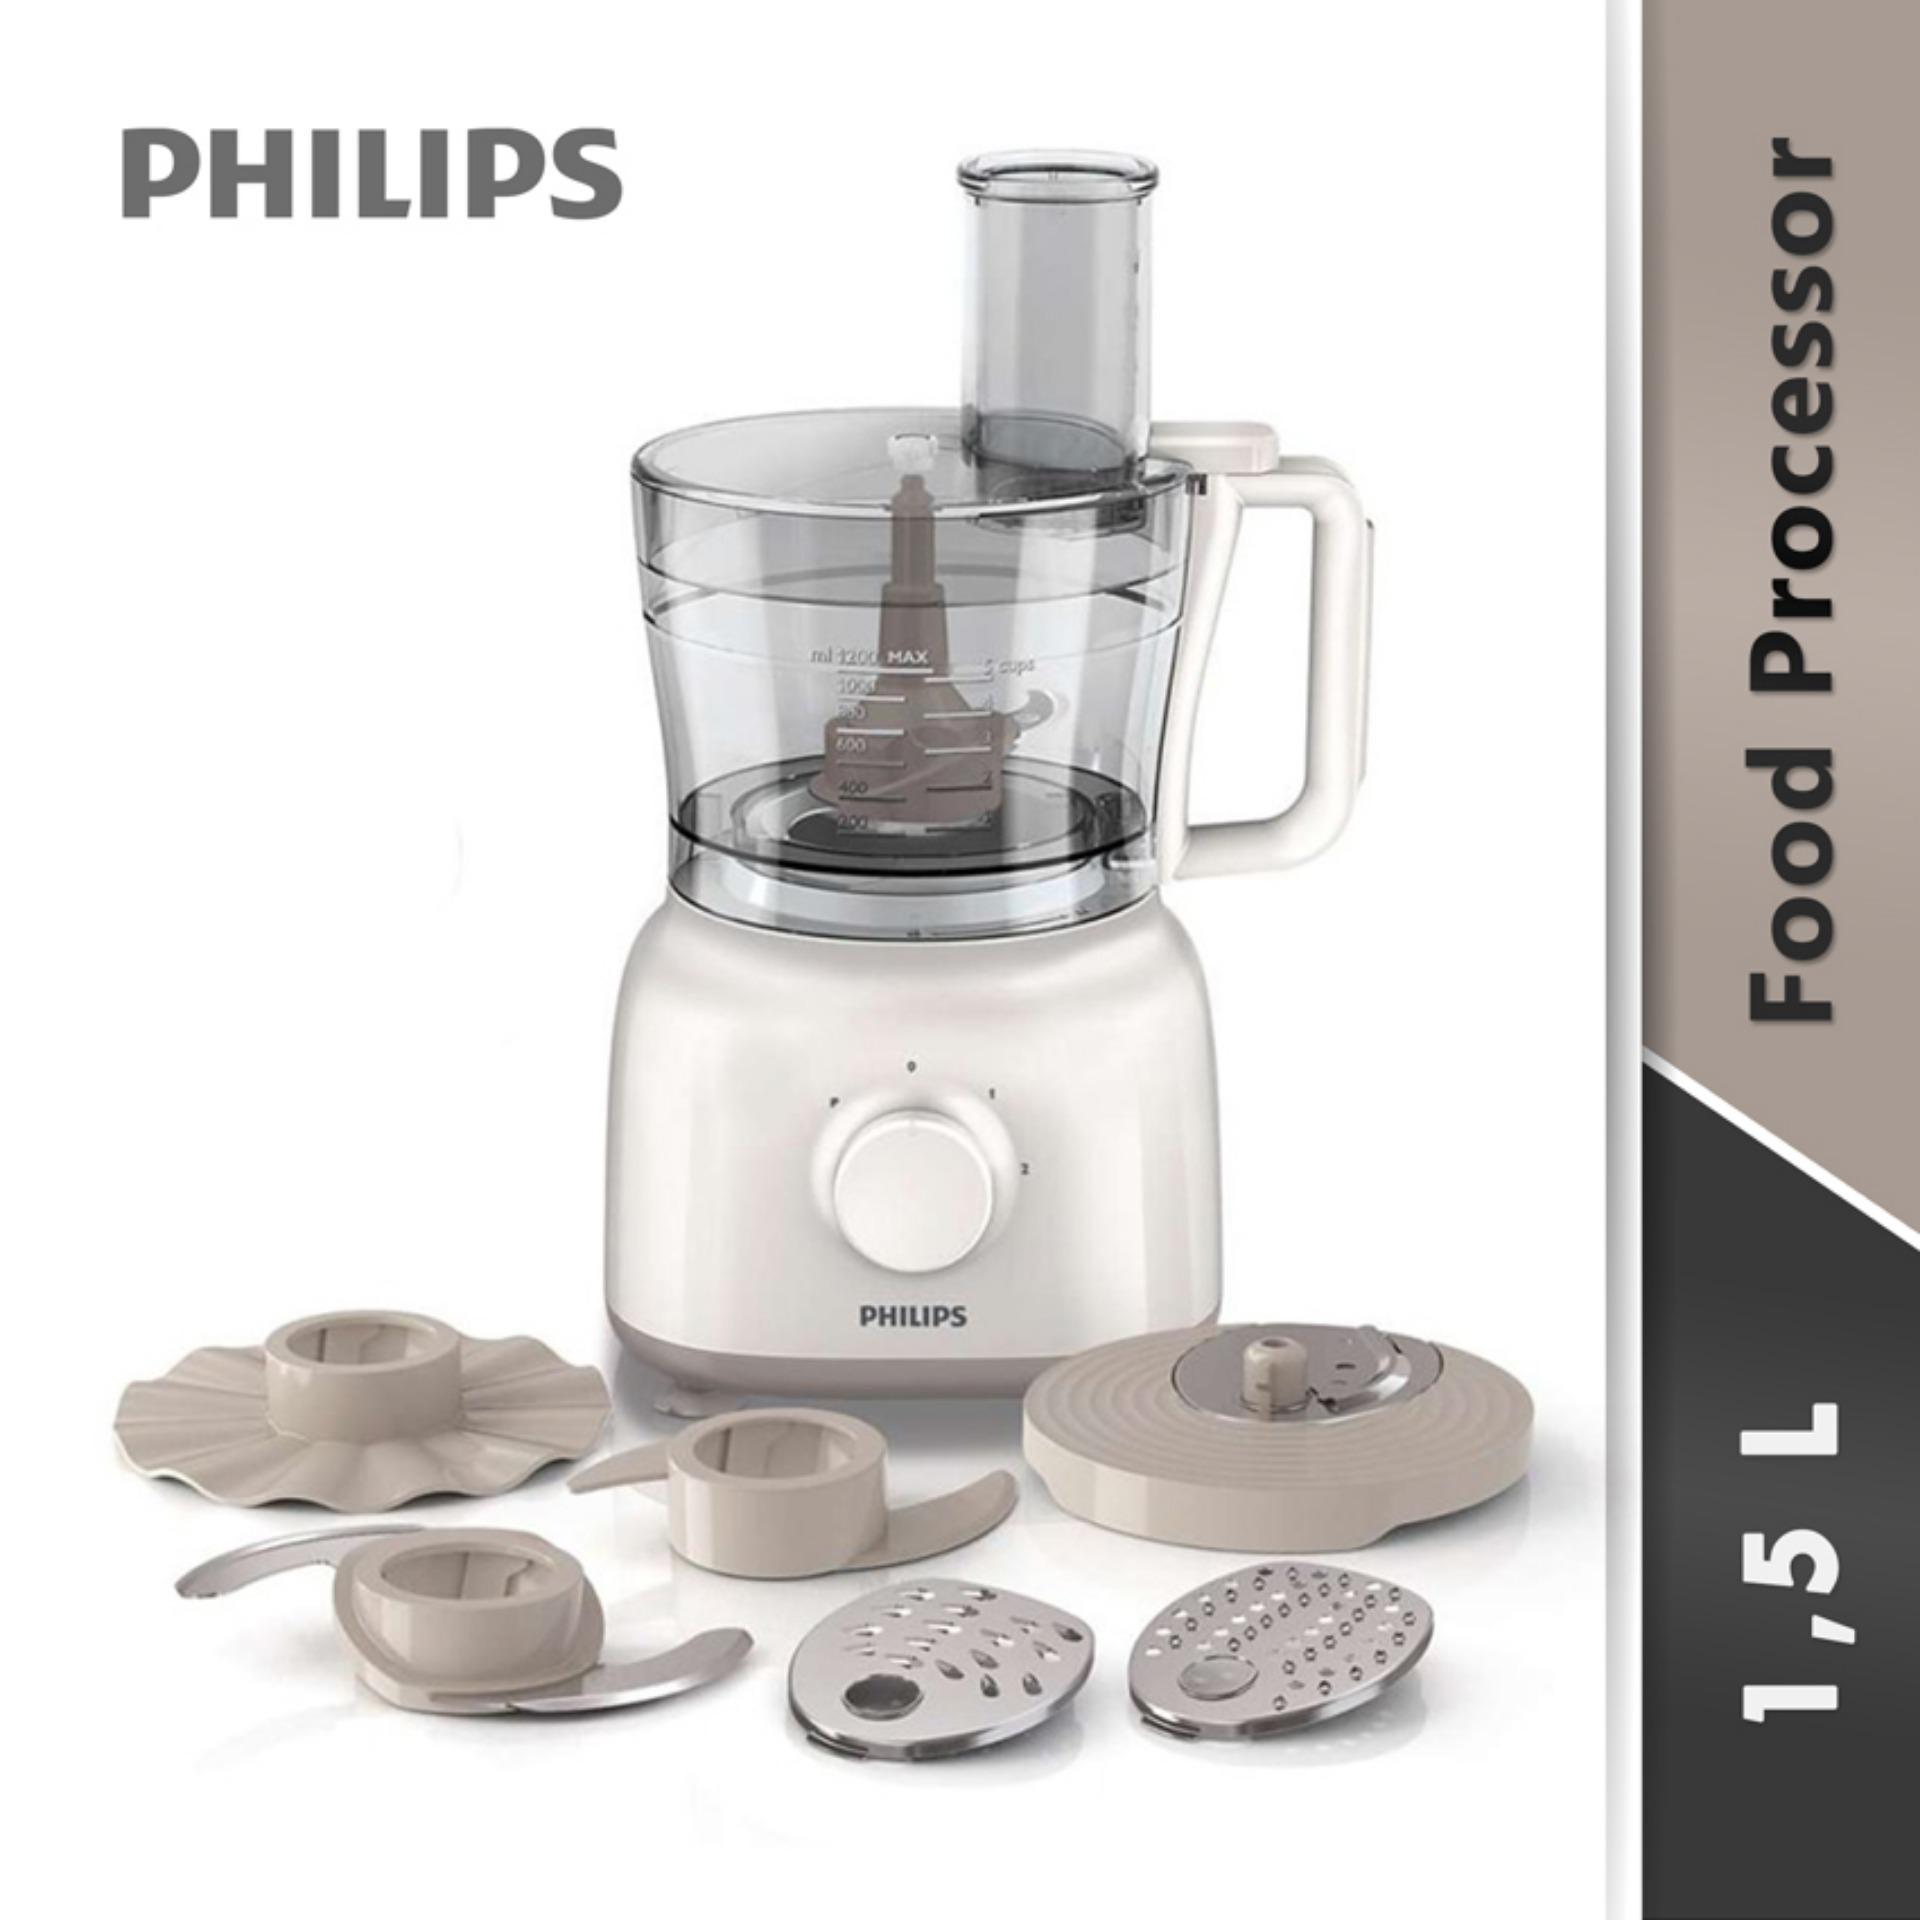 Philips Food Processor Hr7627 Putih 1495541756 5218101 Dea000e6d47cd91f69c557695c406a80